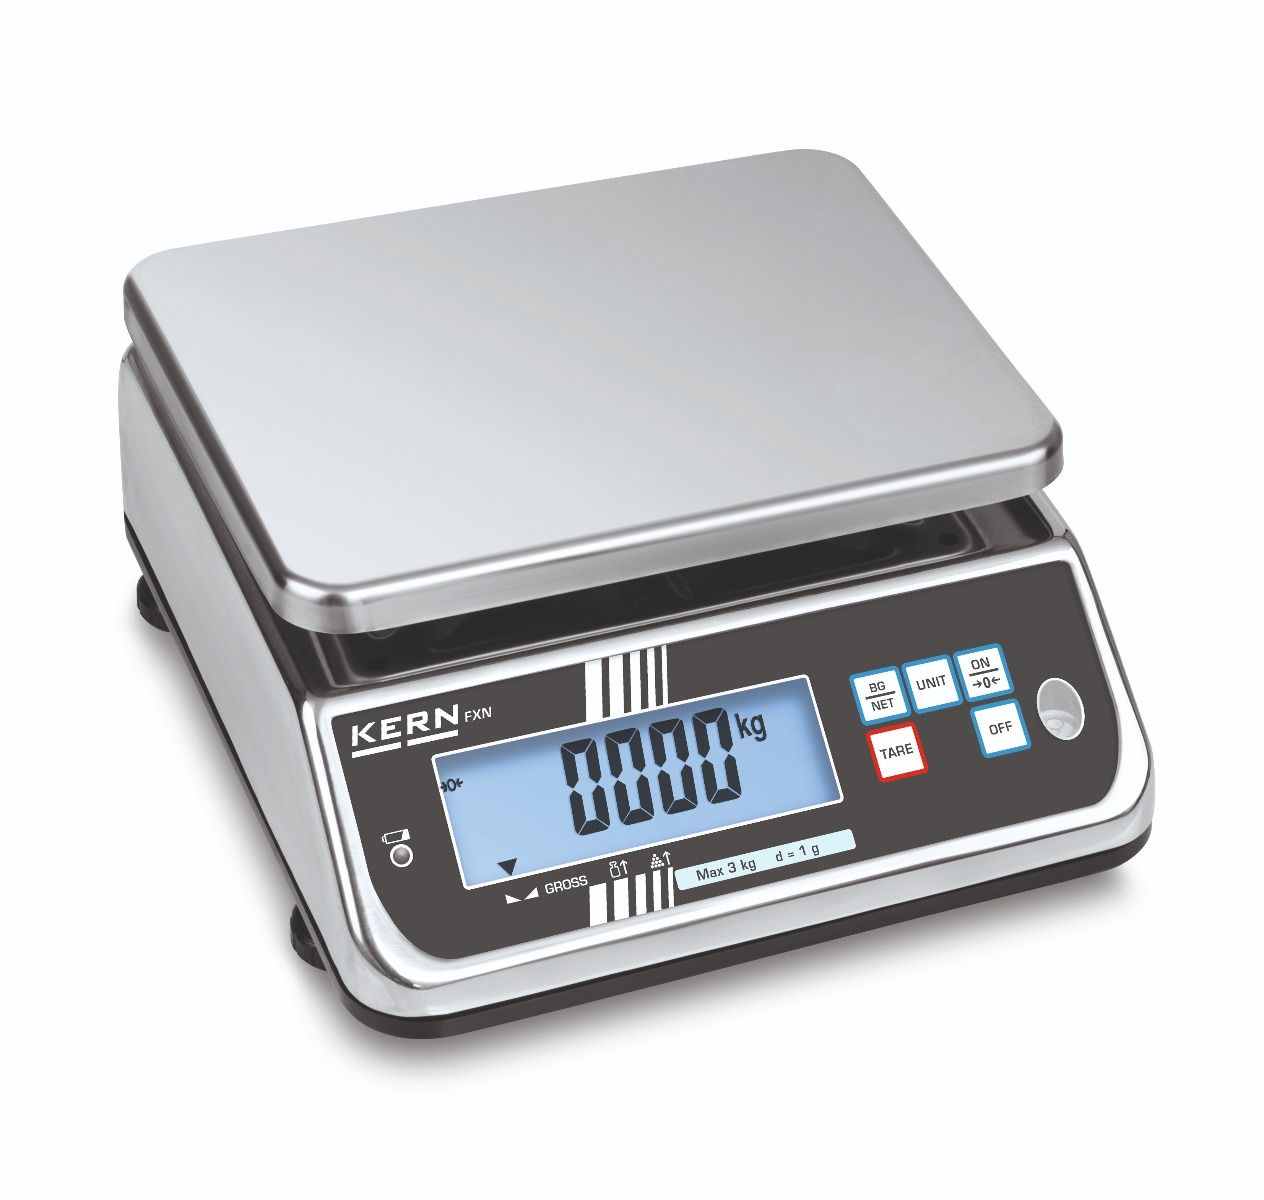 Kern FXN Approved Stainless Steel IP68 Bench Scale